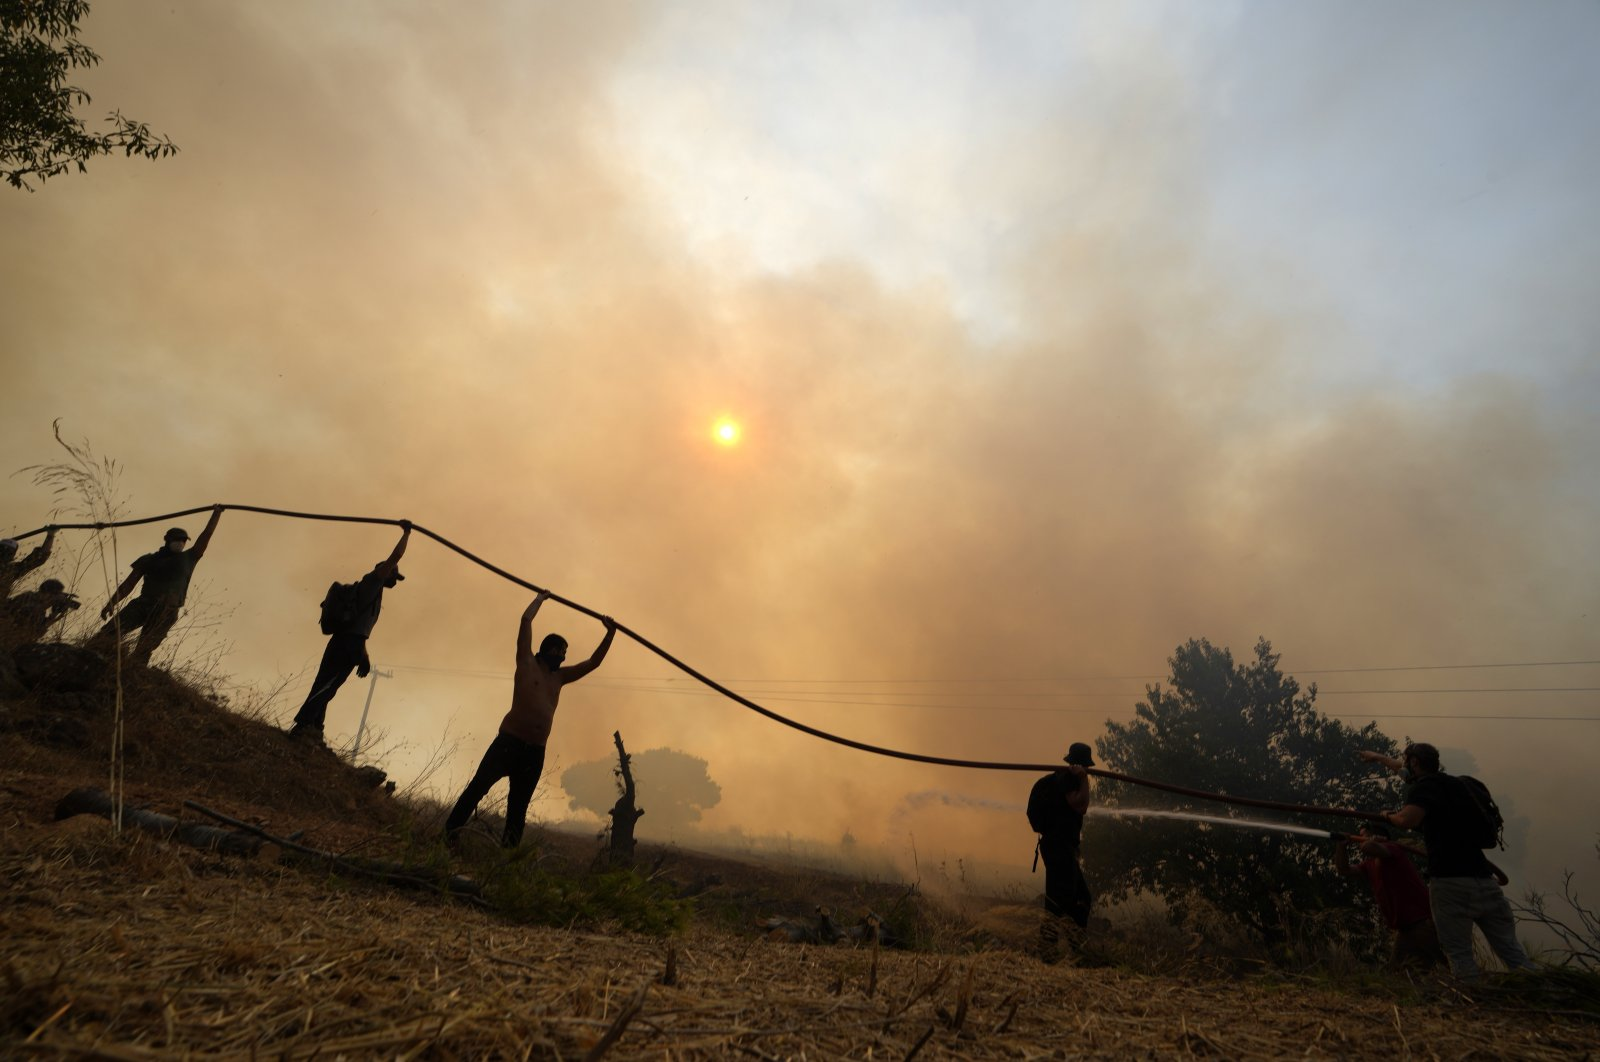 A firefighter tries to extinguish a fire as volunteers hold the water hose during a wildfire in Agios Stefanos, in northern Athens, Greece, Aug. 6, 2021. (AP File Photo)